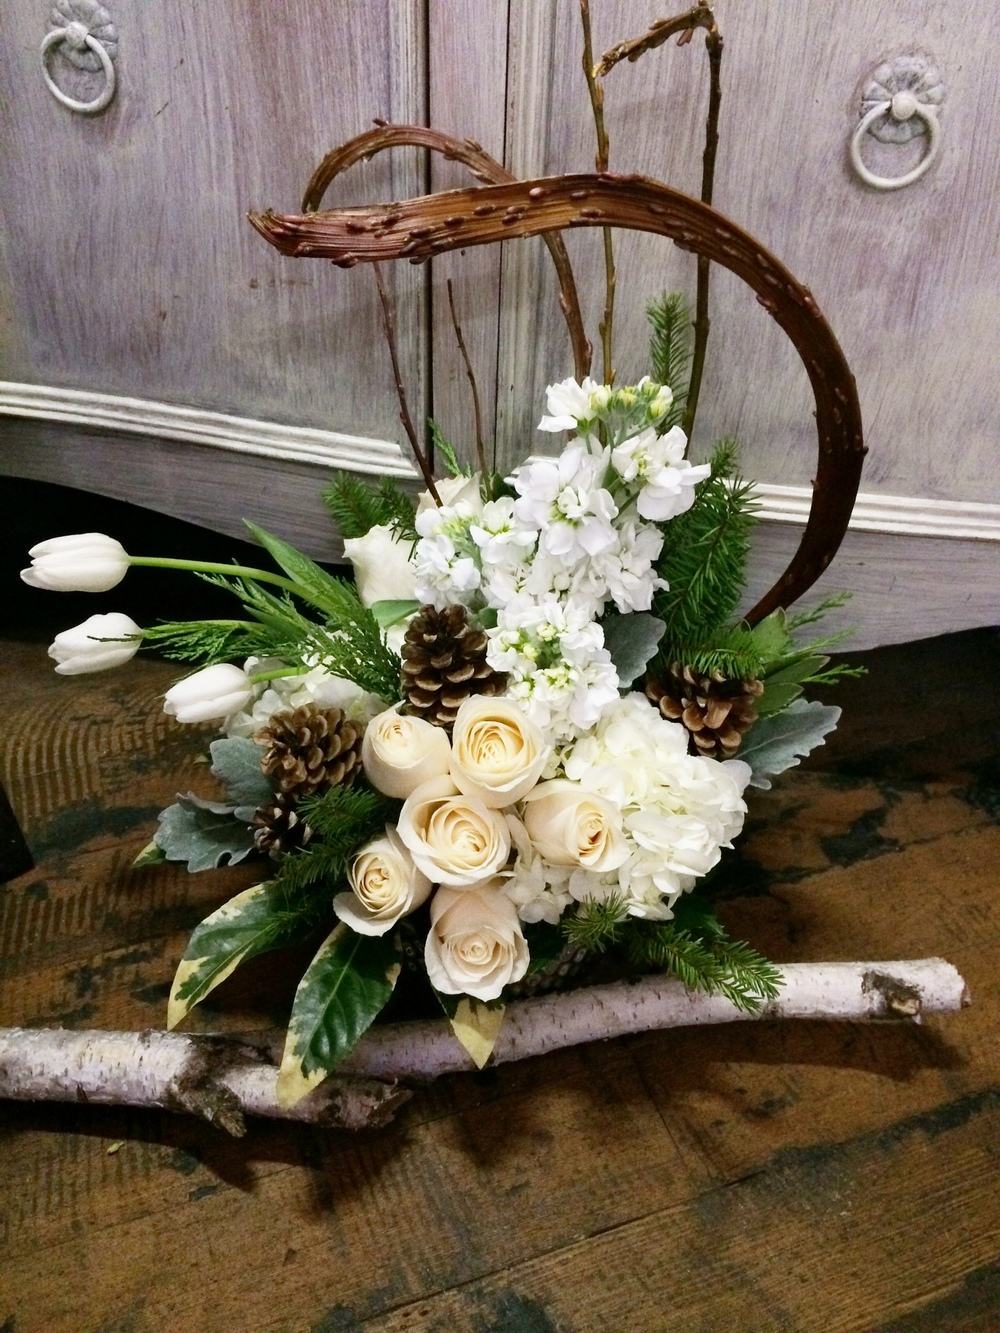 66. Stylish and Natural Winter Centerpiece in white